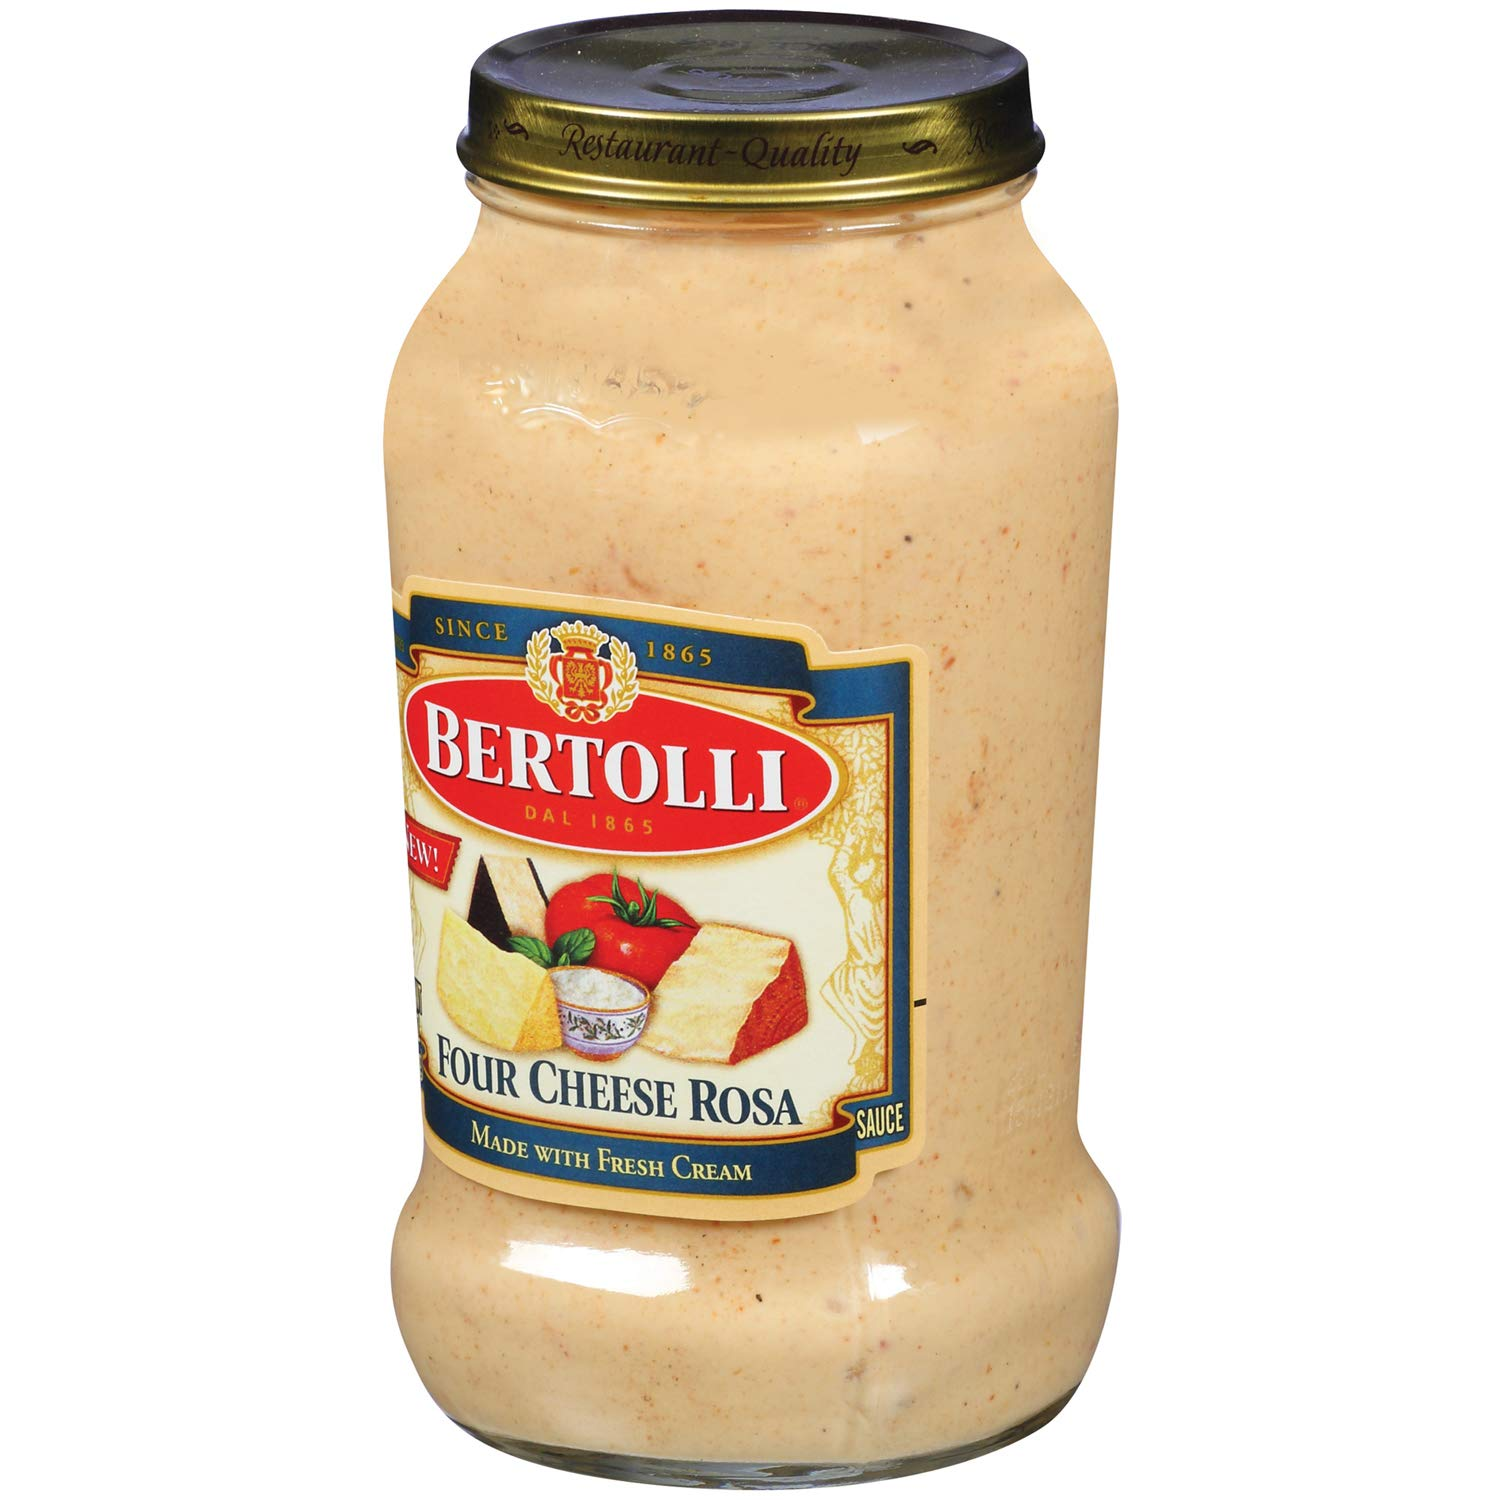 Bertolli Four Cheese Rosa Pasta Sauce 15oz (2 count) (Pack of 1)